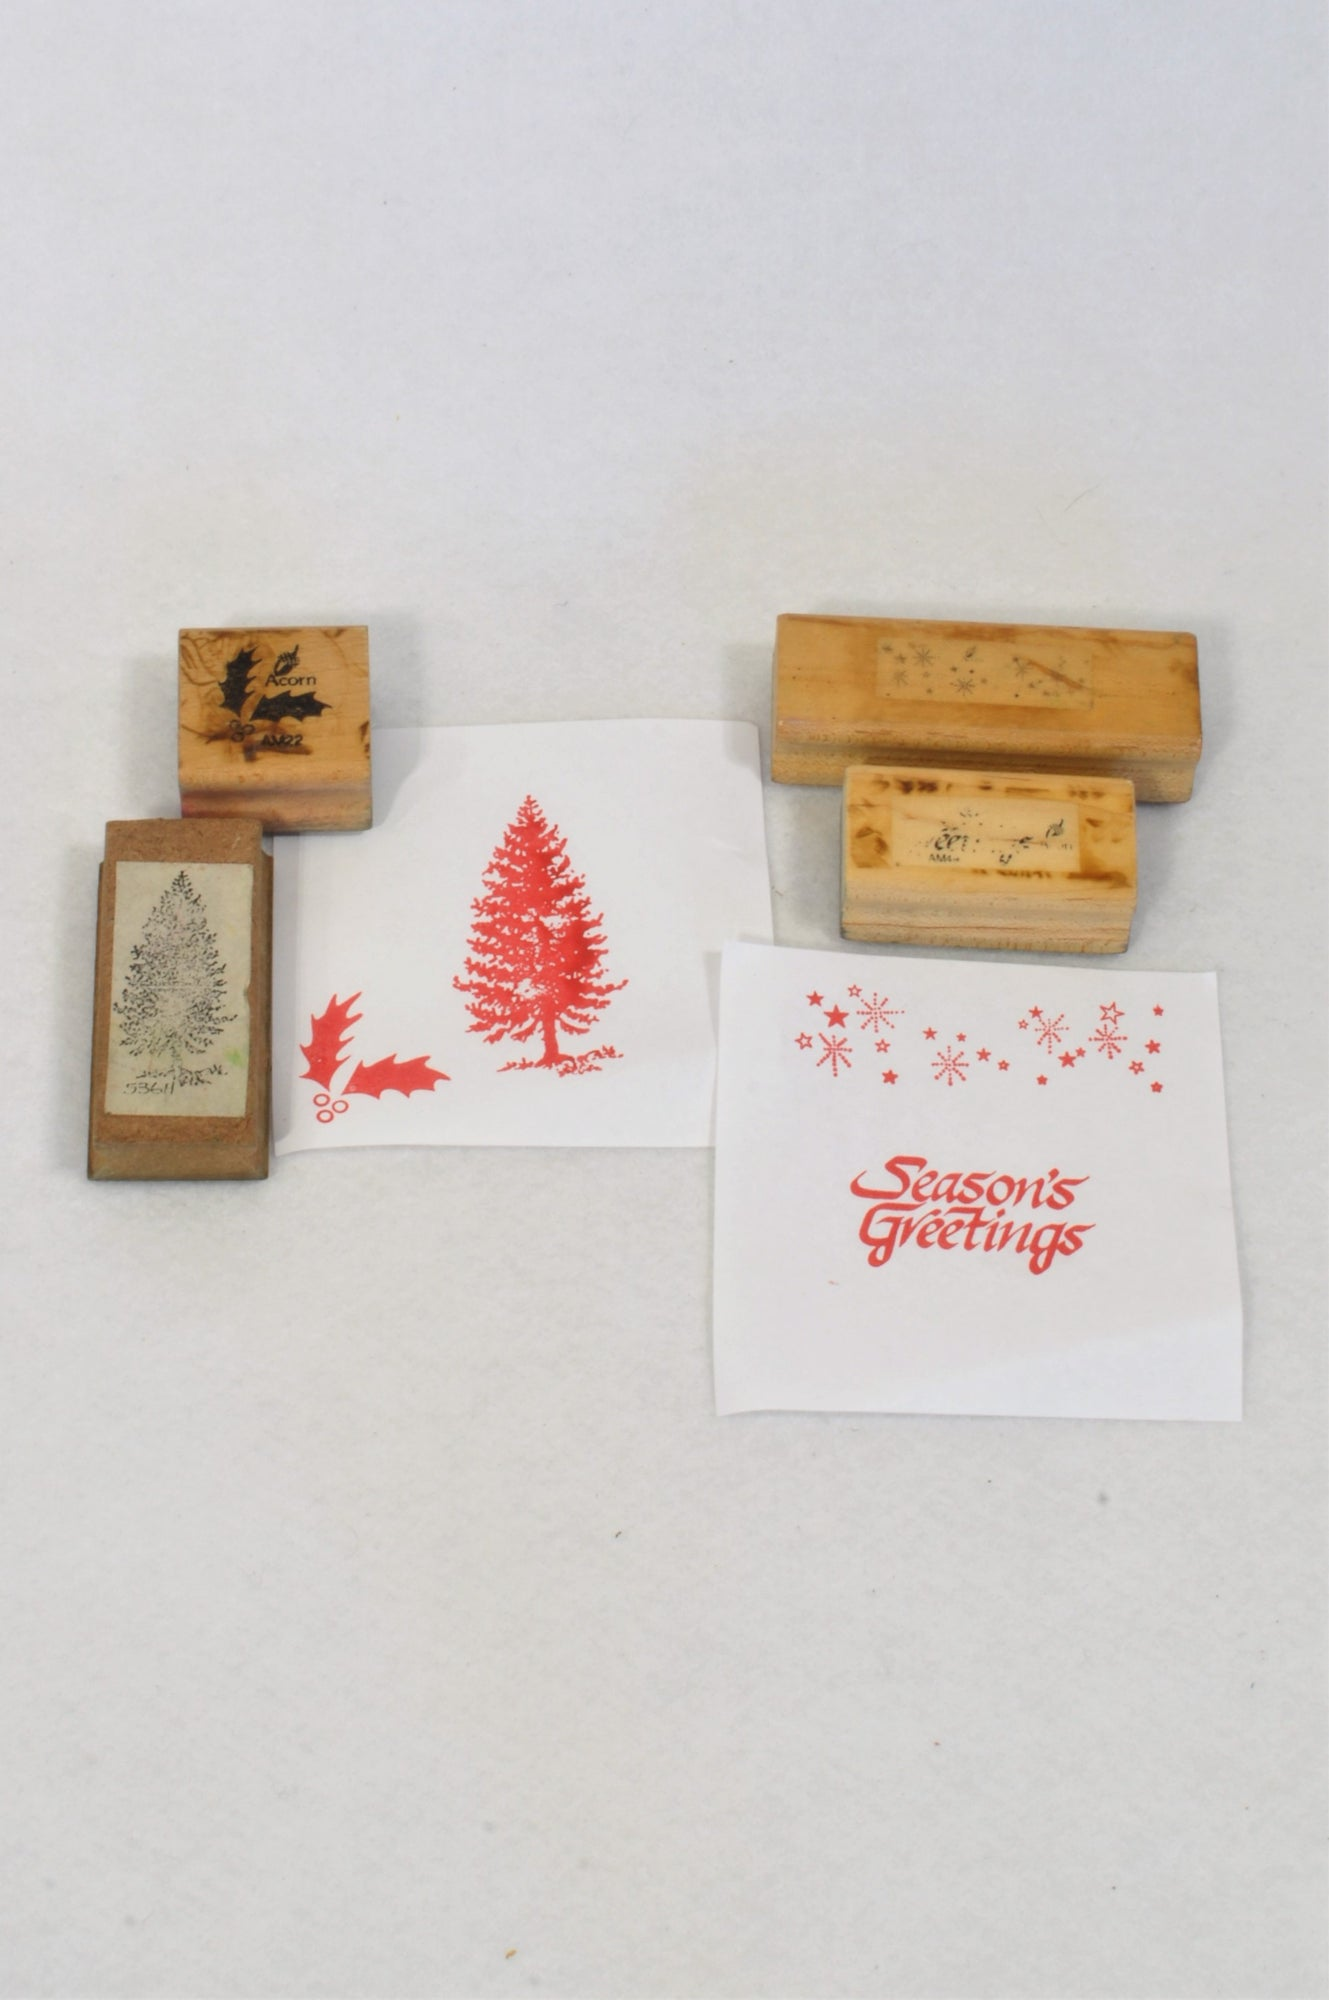 4 Pack Season's Greetings Stamps Toy Unisex 1-8 years